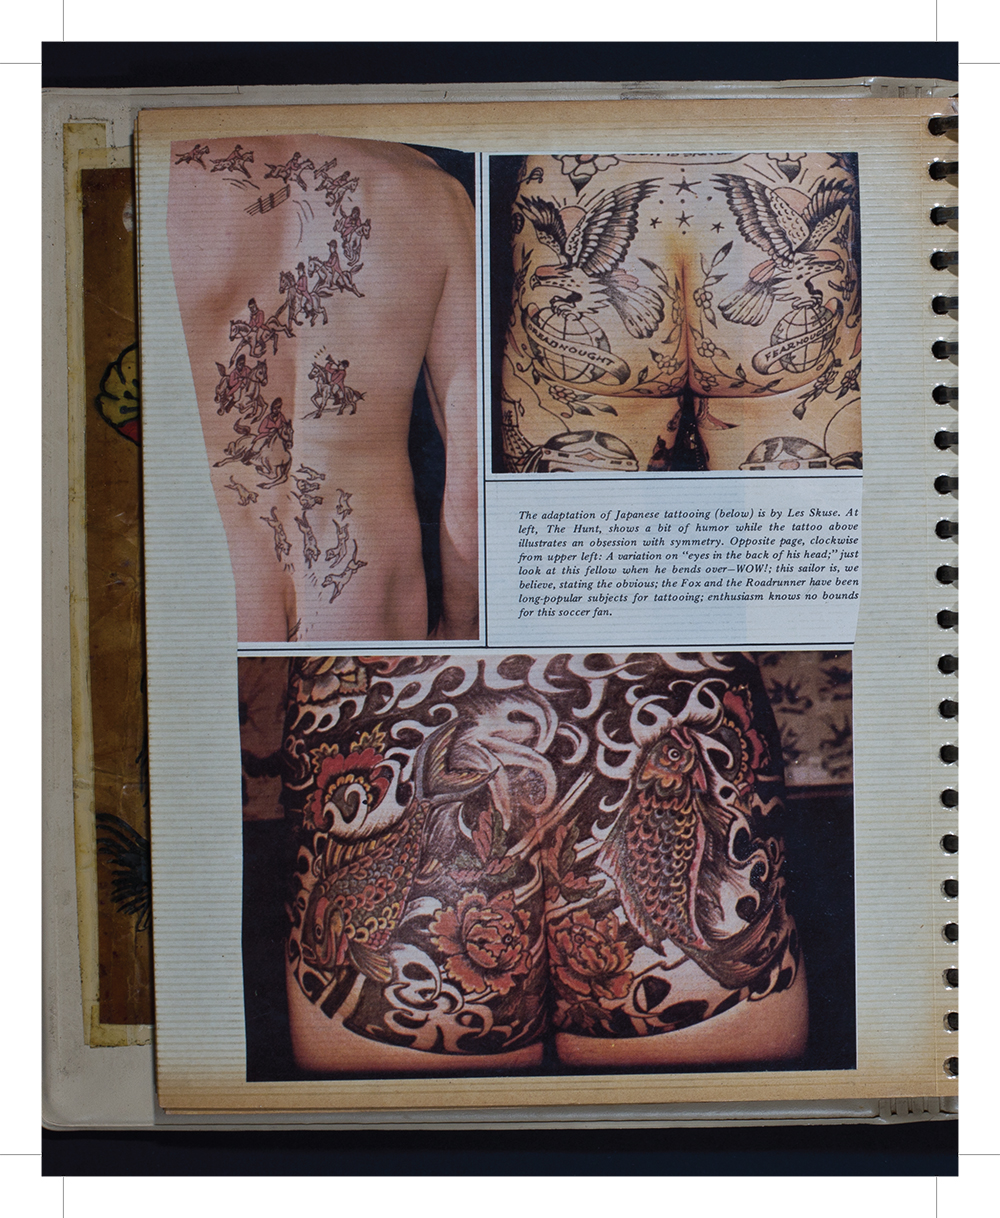 Australian Tattoo history  (The 4th Wall, stories of tattoos & body modification, by Fareed Kaviani: www.the4thwall.net)